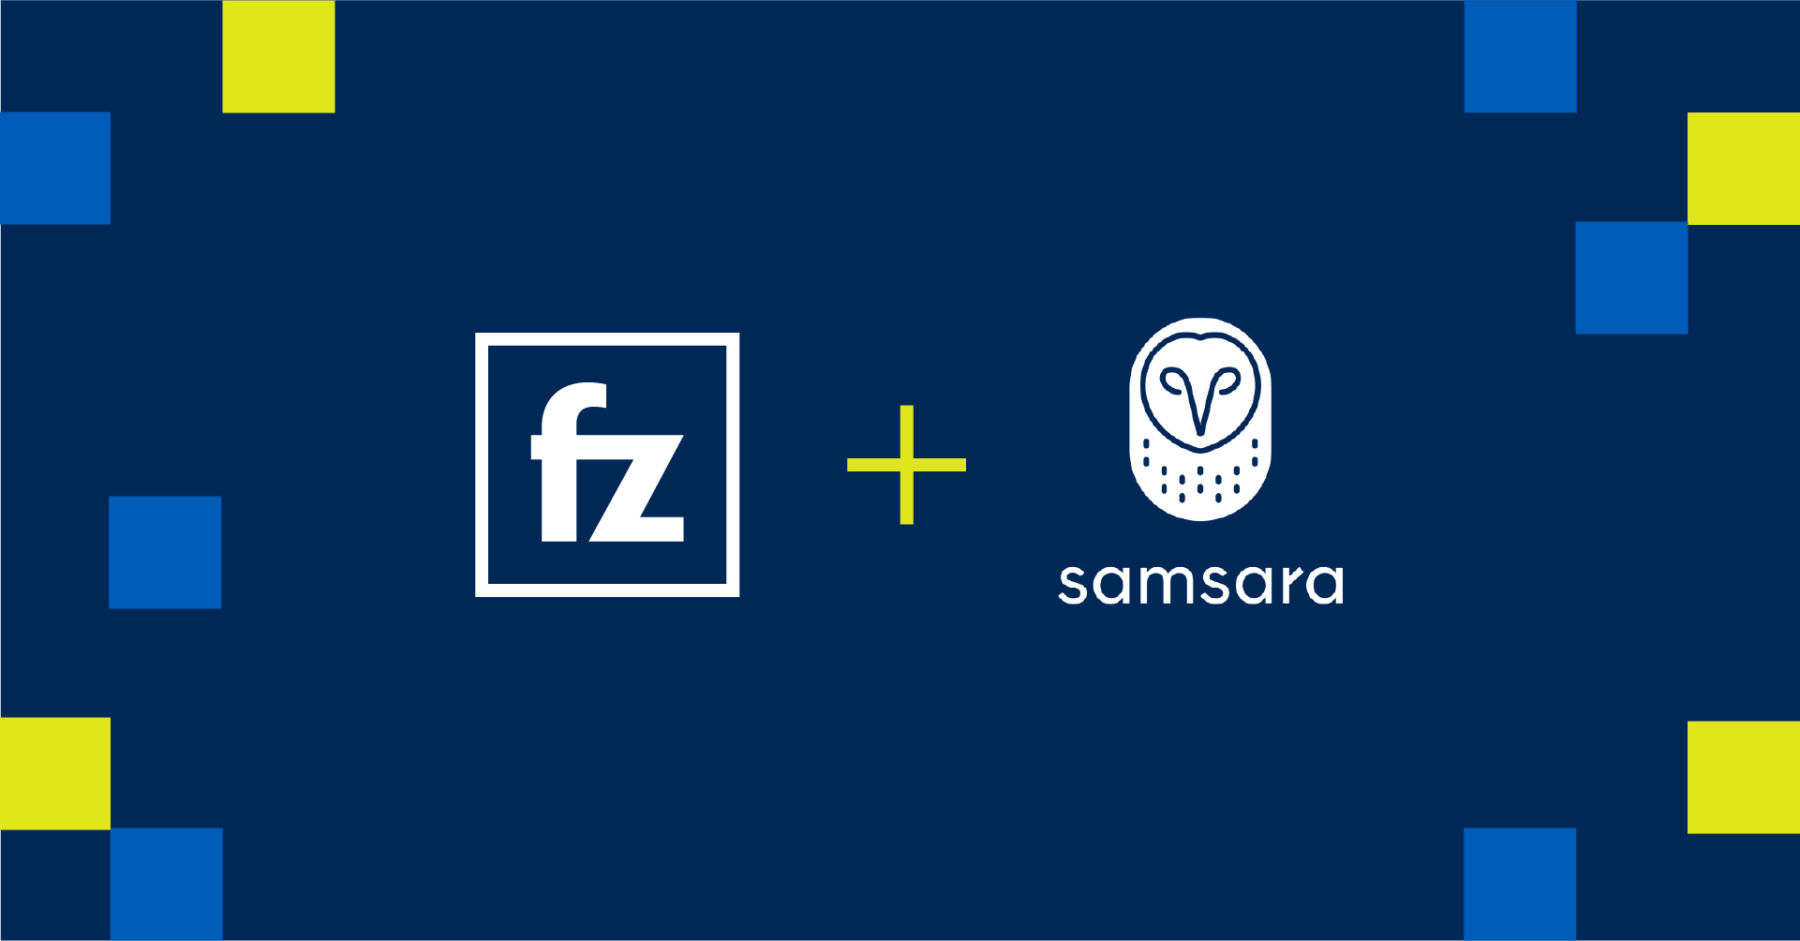 FZ Partners with Samsara and their IoT solutions